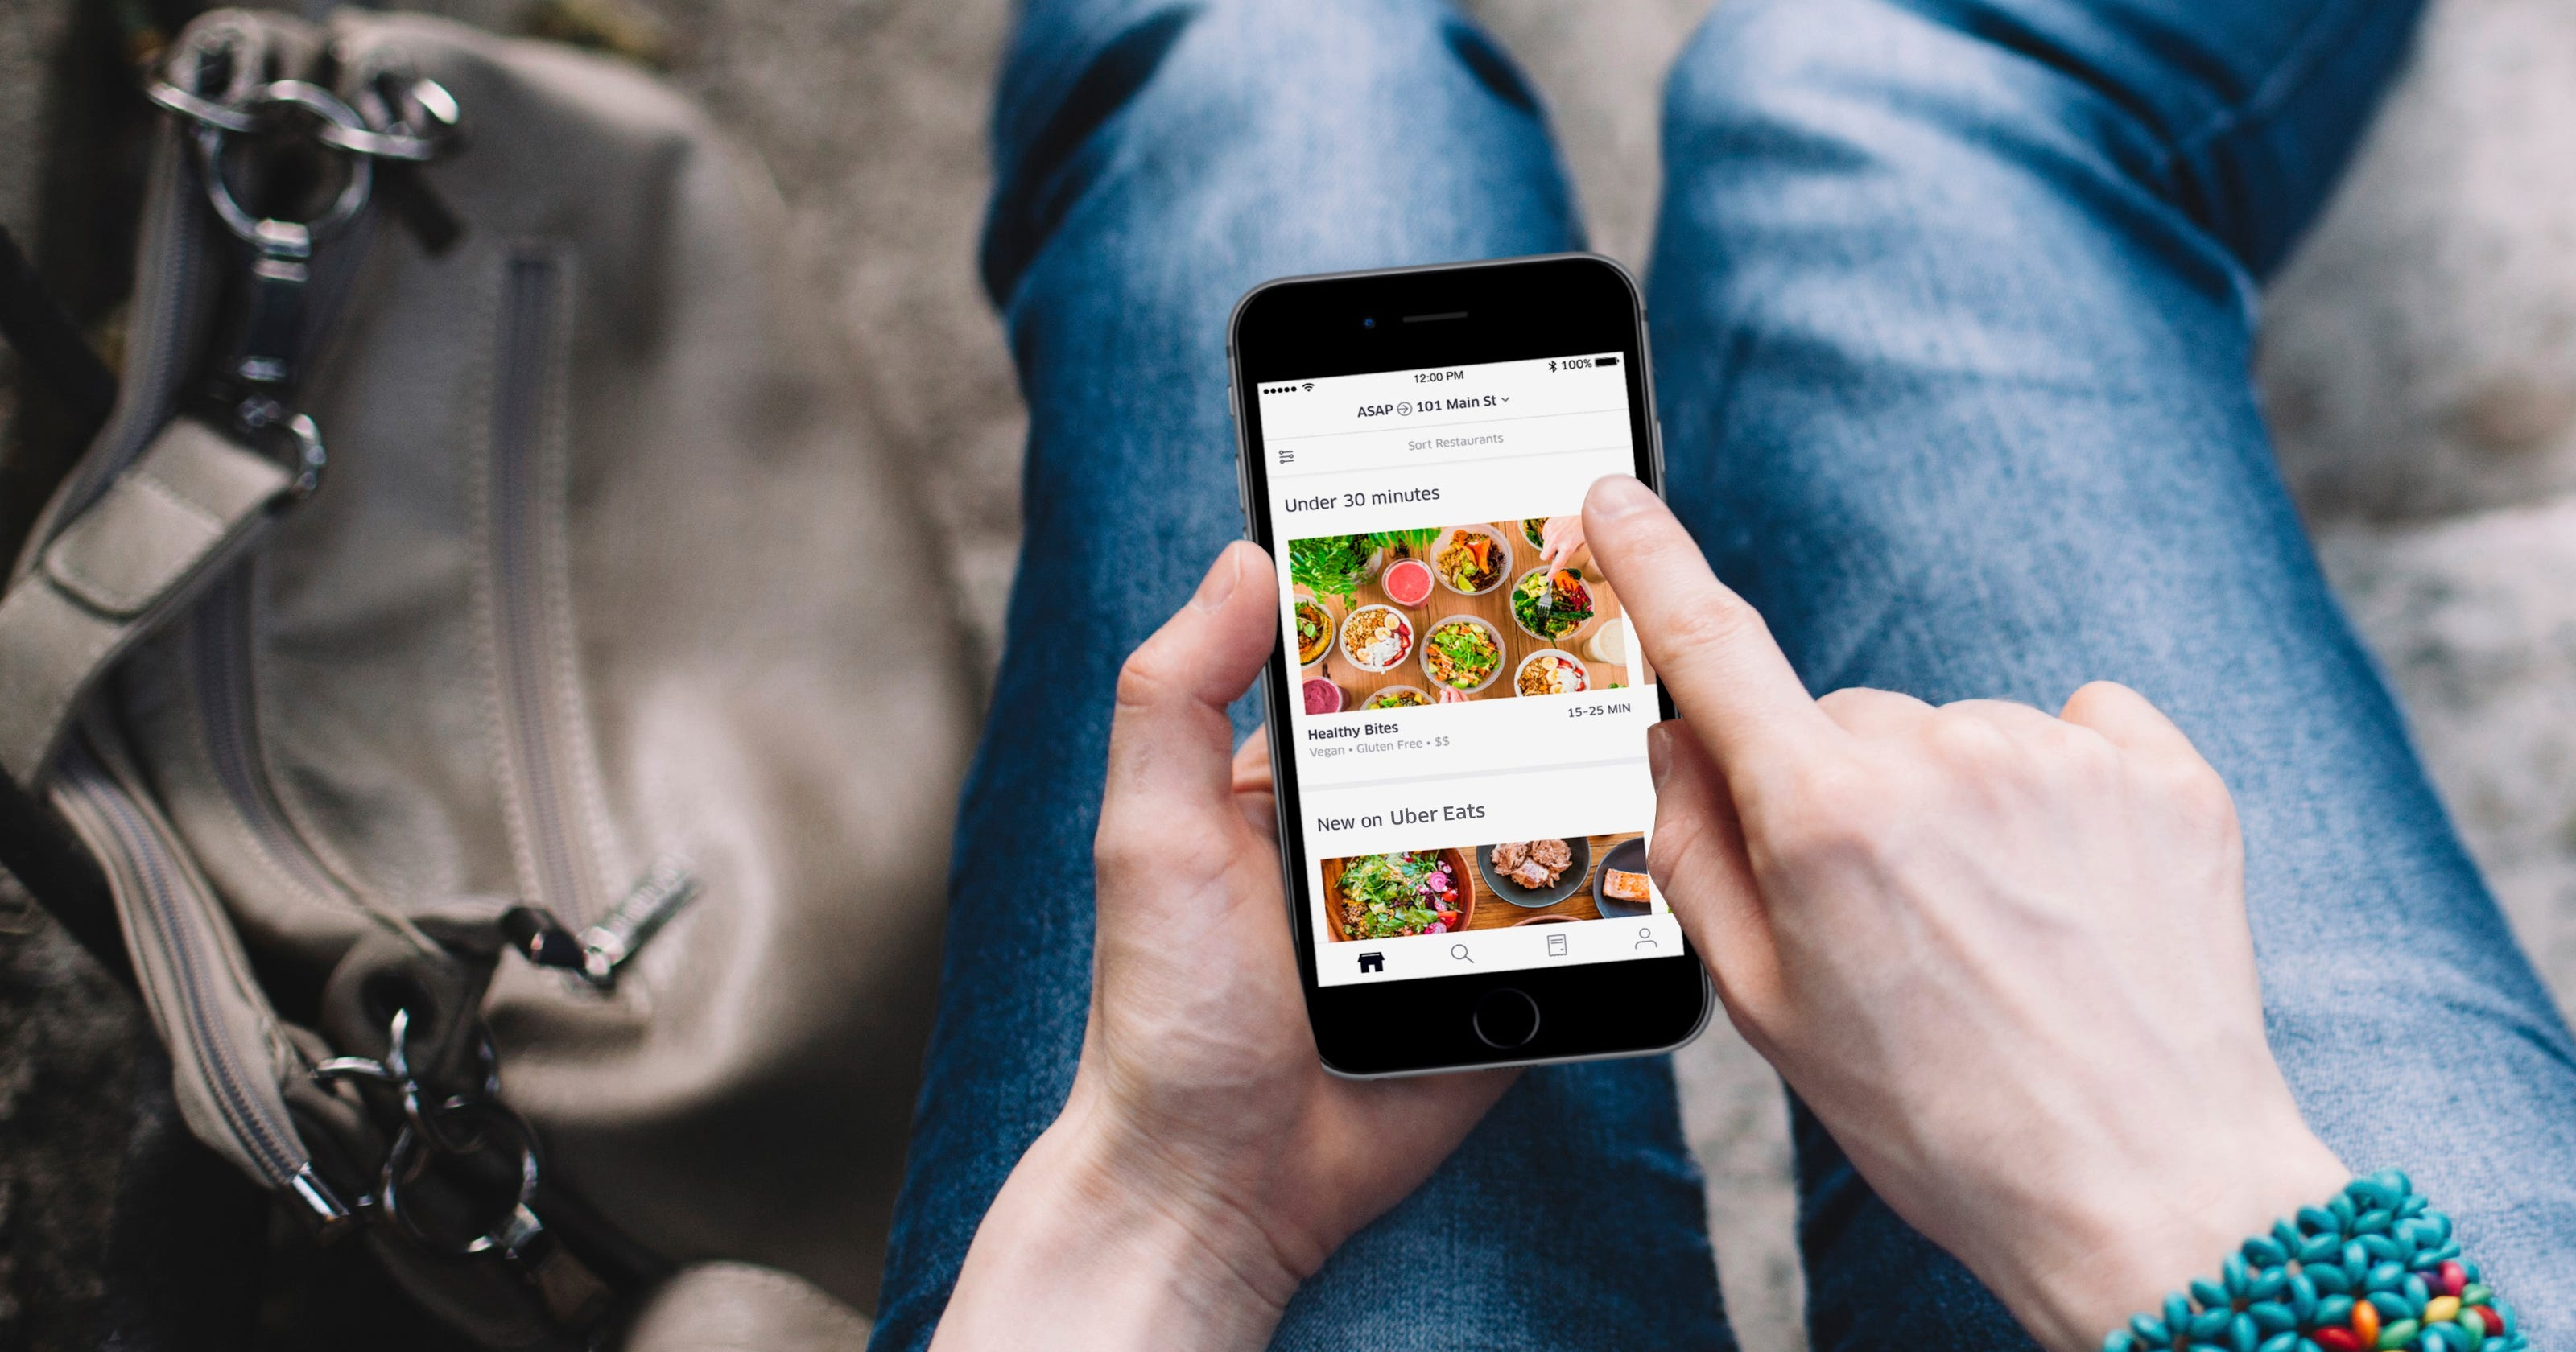 Uber Eats launches Thursday with free deliveries